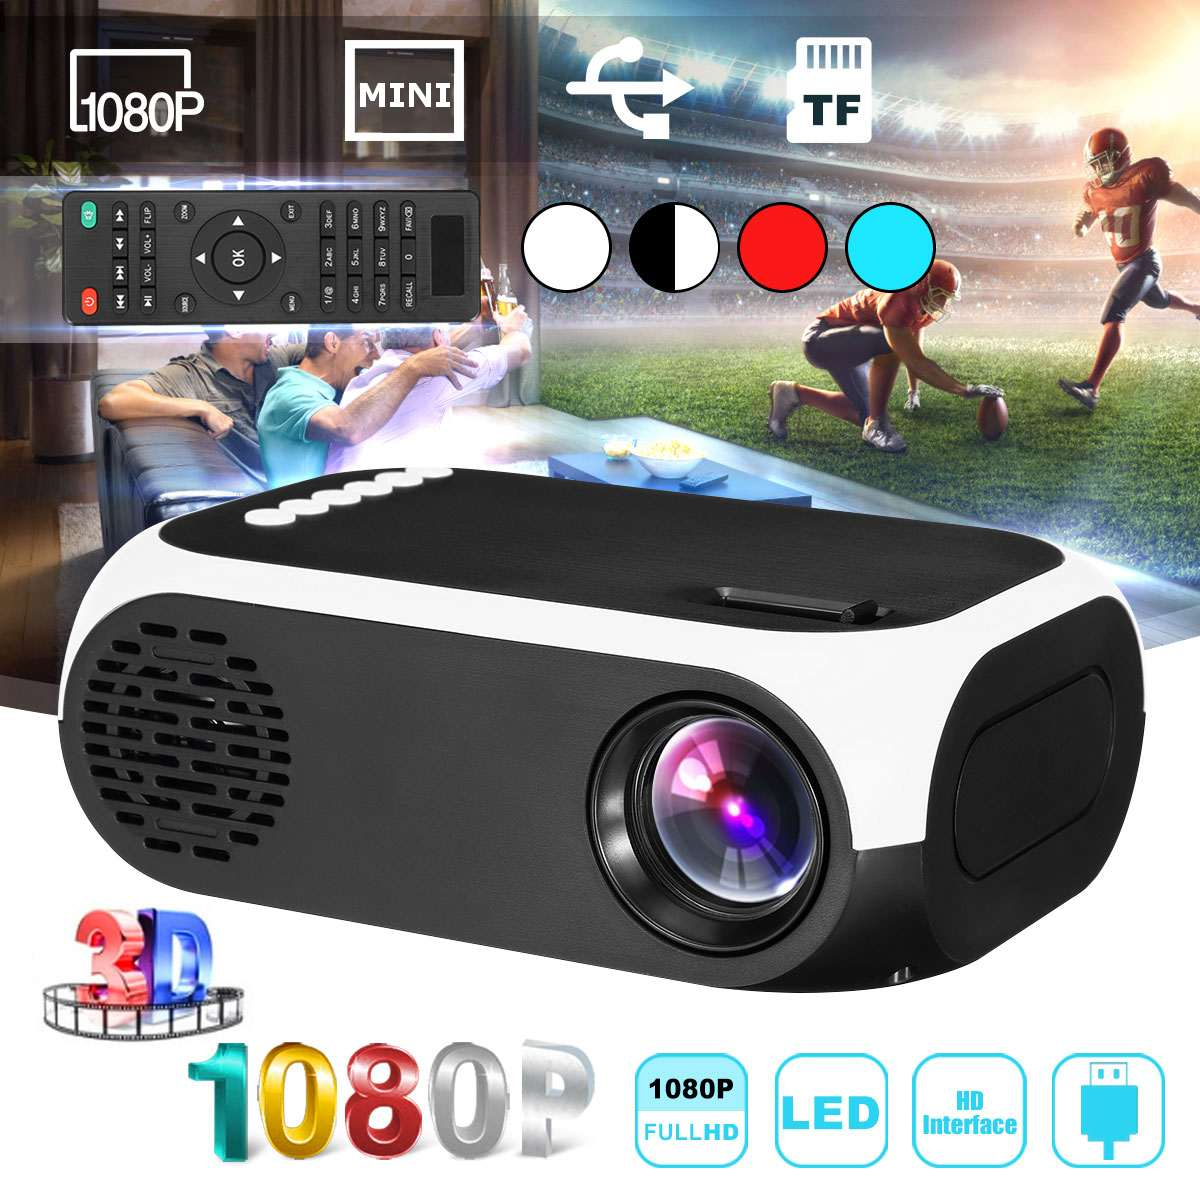 Mini projector 1080p HD USB TF Portable Cinema Projector Home Theatre System Support 3D Movie Household Projector